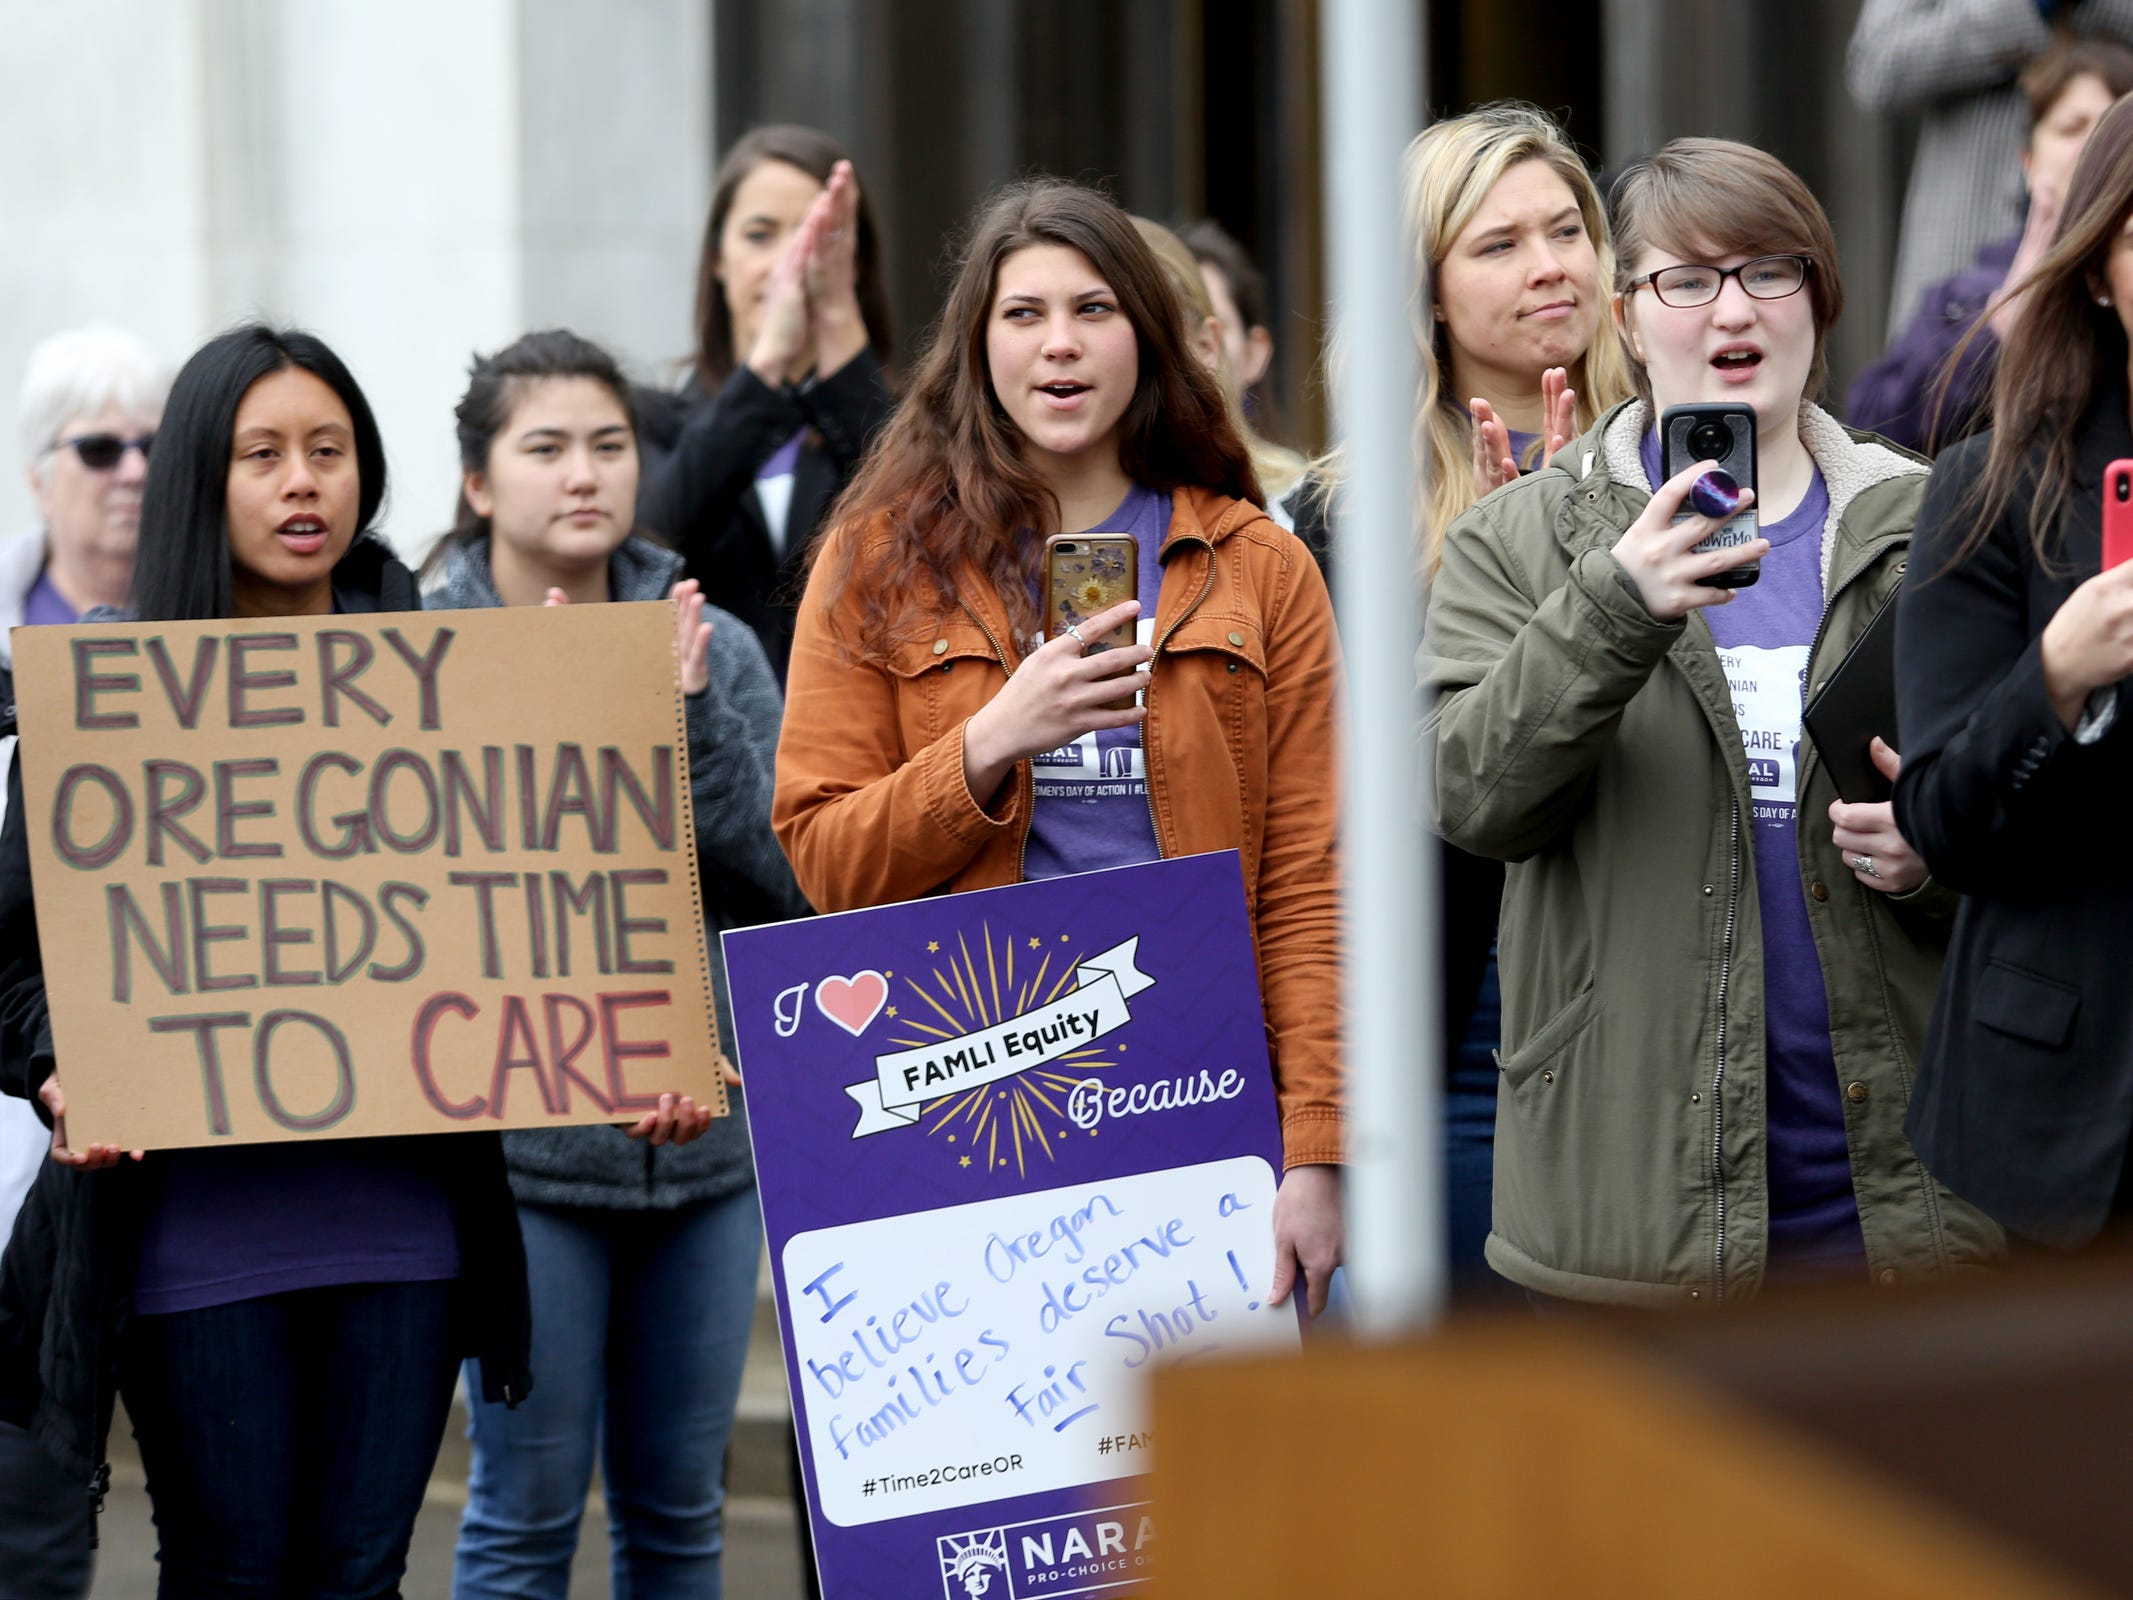 Malaya Lualhati, from left, of Corvallis, Kyana Wigen, of Corvallis, Marial Vellinga, of Salem, and others attend a demonstration for International Women's Day at the Oregon State Capitol in Salem on Friday, March 8, 2019. Many during the rally voiced their support for a state-run family and medical leave insurance program in Oregon.